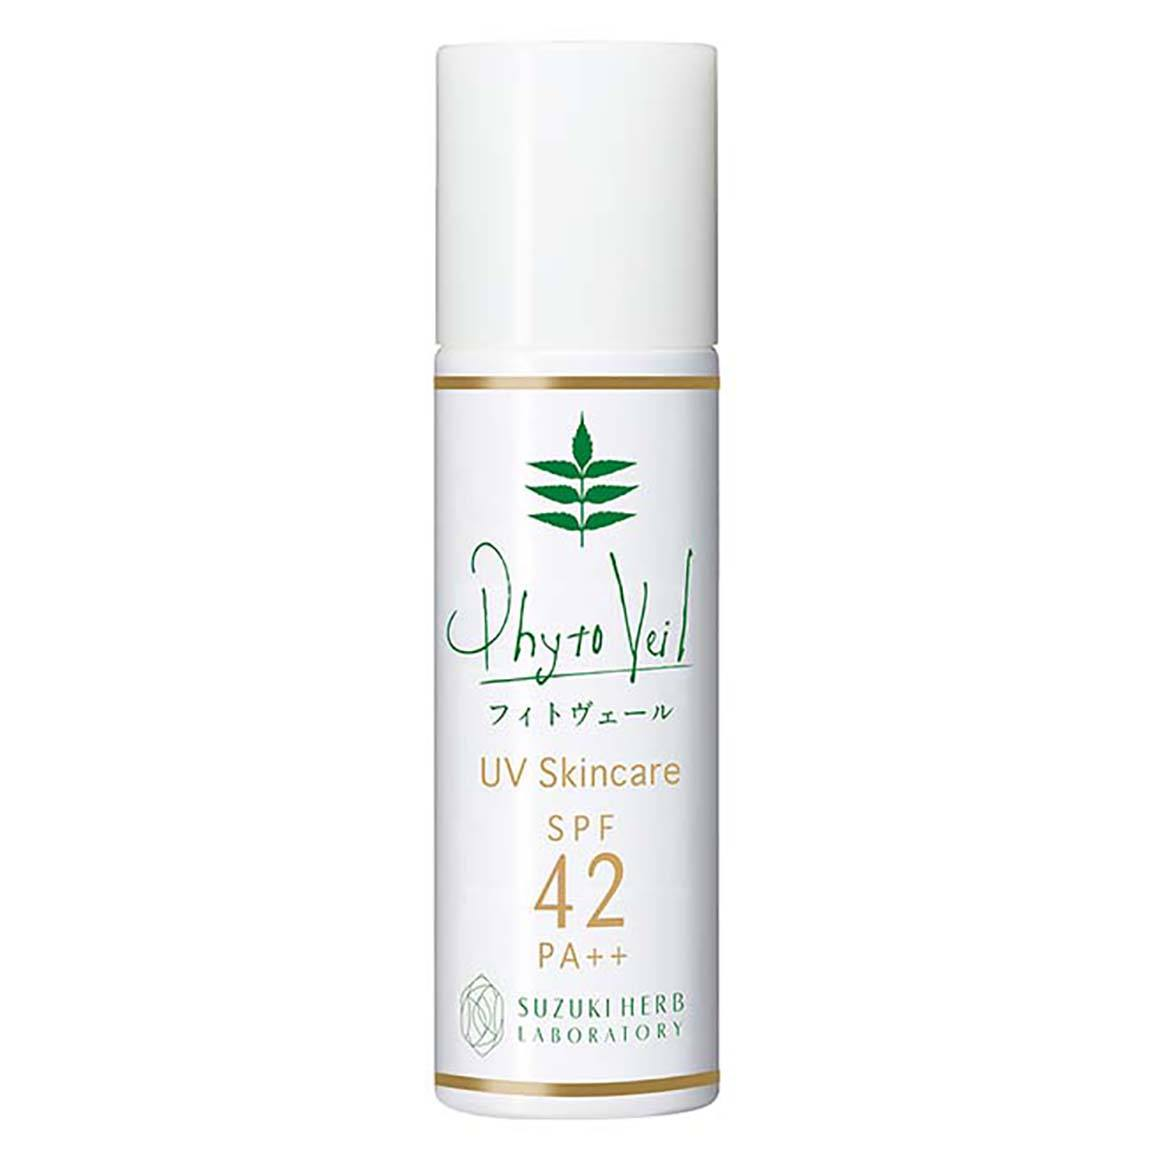 Japanese no ethanol long-lasting UV protection sunscreen cream